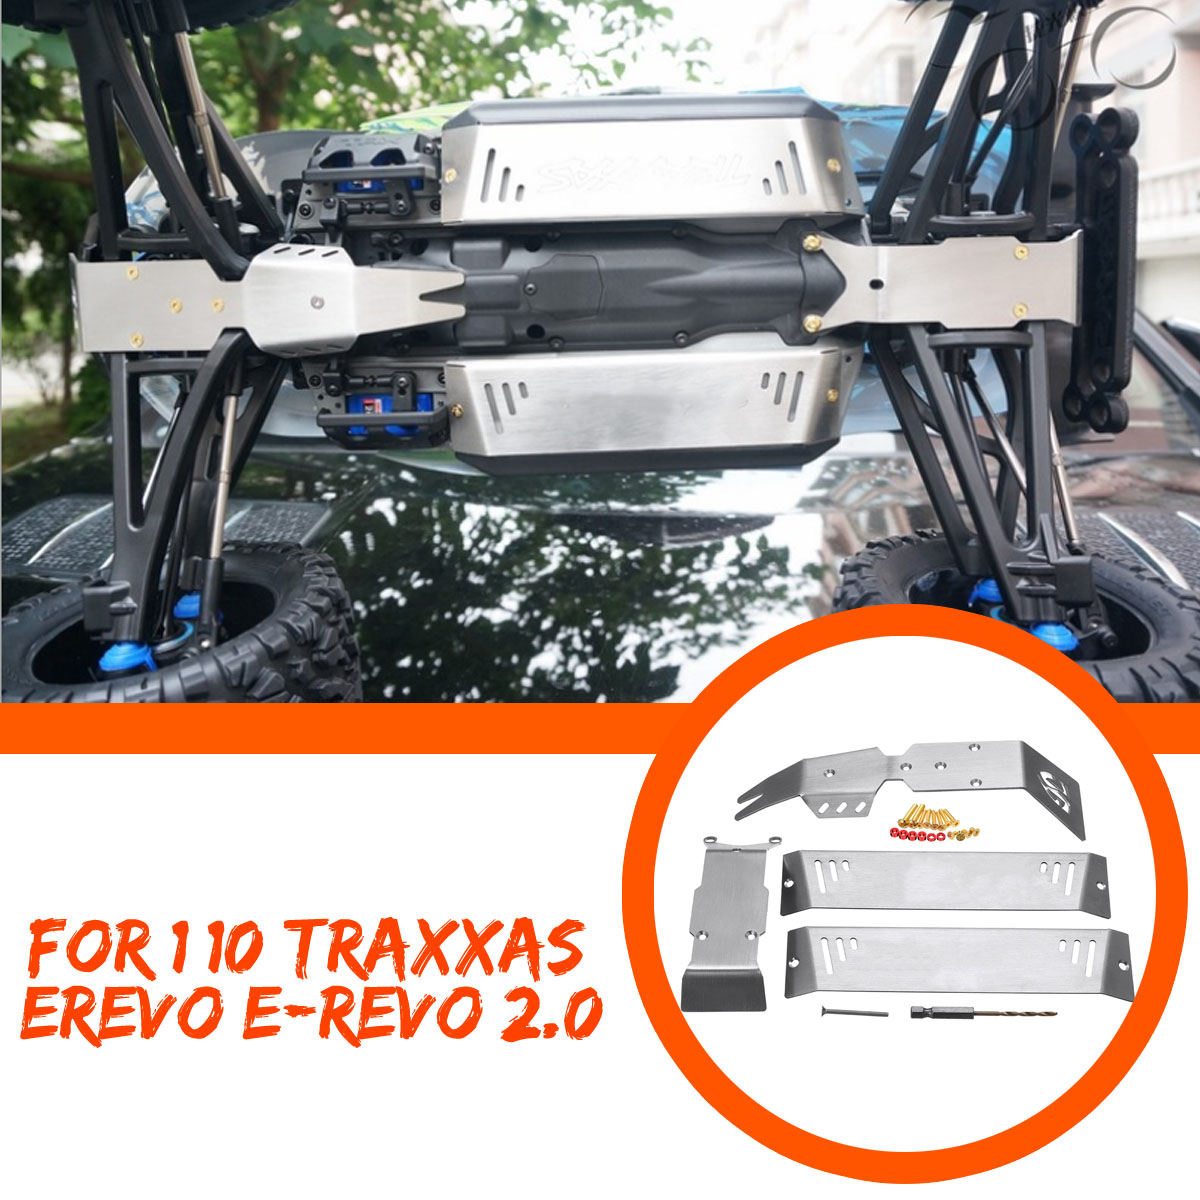 1 Set Stainless Steel Chassis Armor Skid Plate For 1/10 Traxxas ERevo E-Revo 2.0 RC Car Parts Chassis Armor Skid Plate1 Set Stainless Steel Chassis Armor Skid Plate For 1/10 Traxxas ERevo E-Revo 2.0 RC Car Parts Chassis Armor Skid Plate